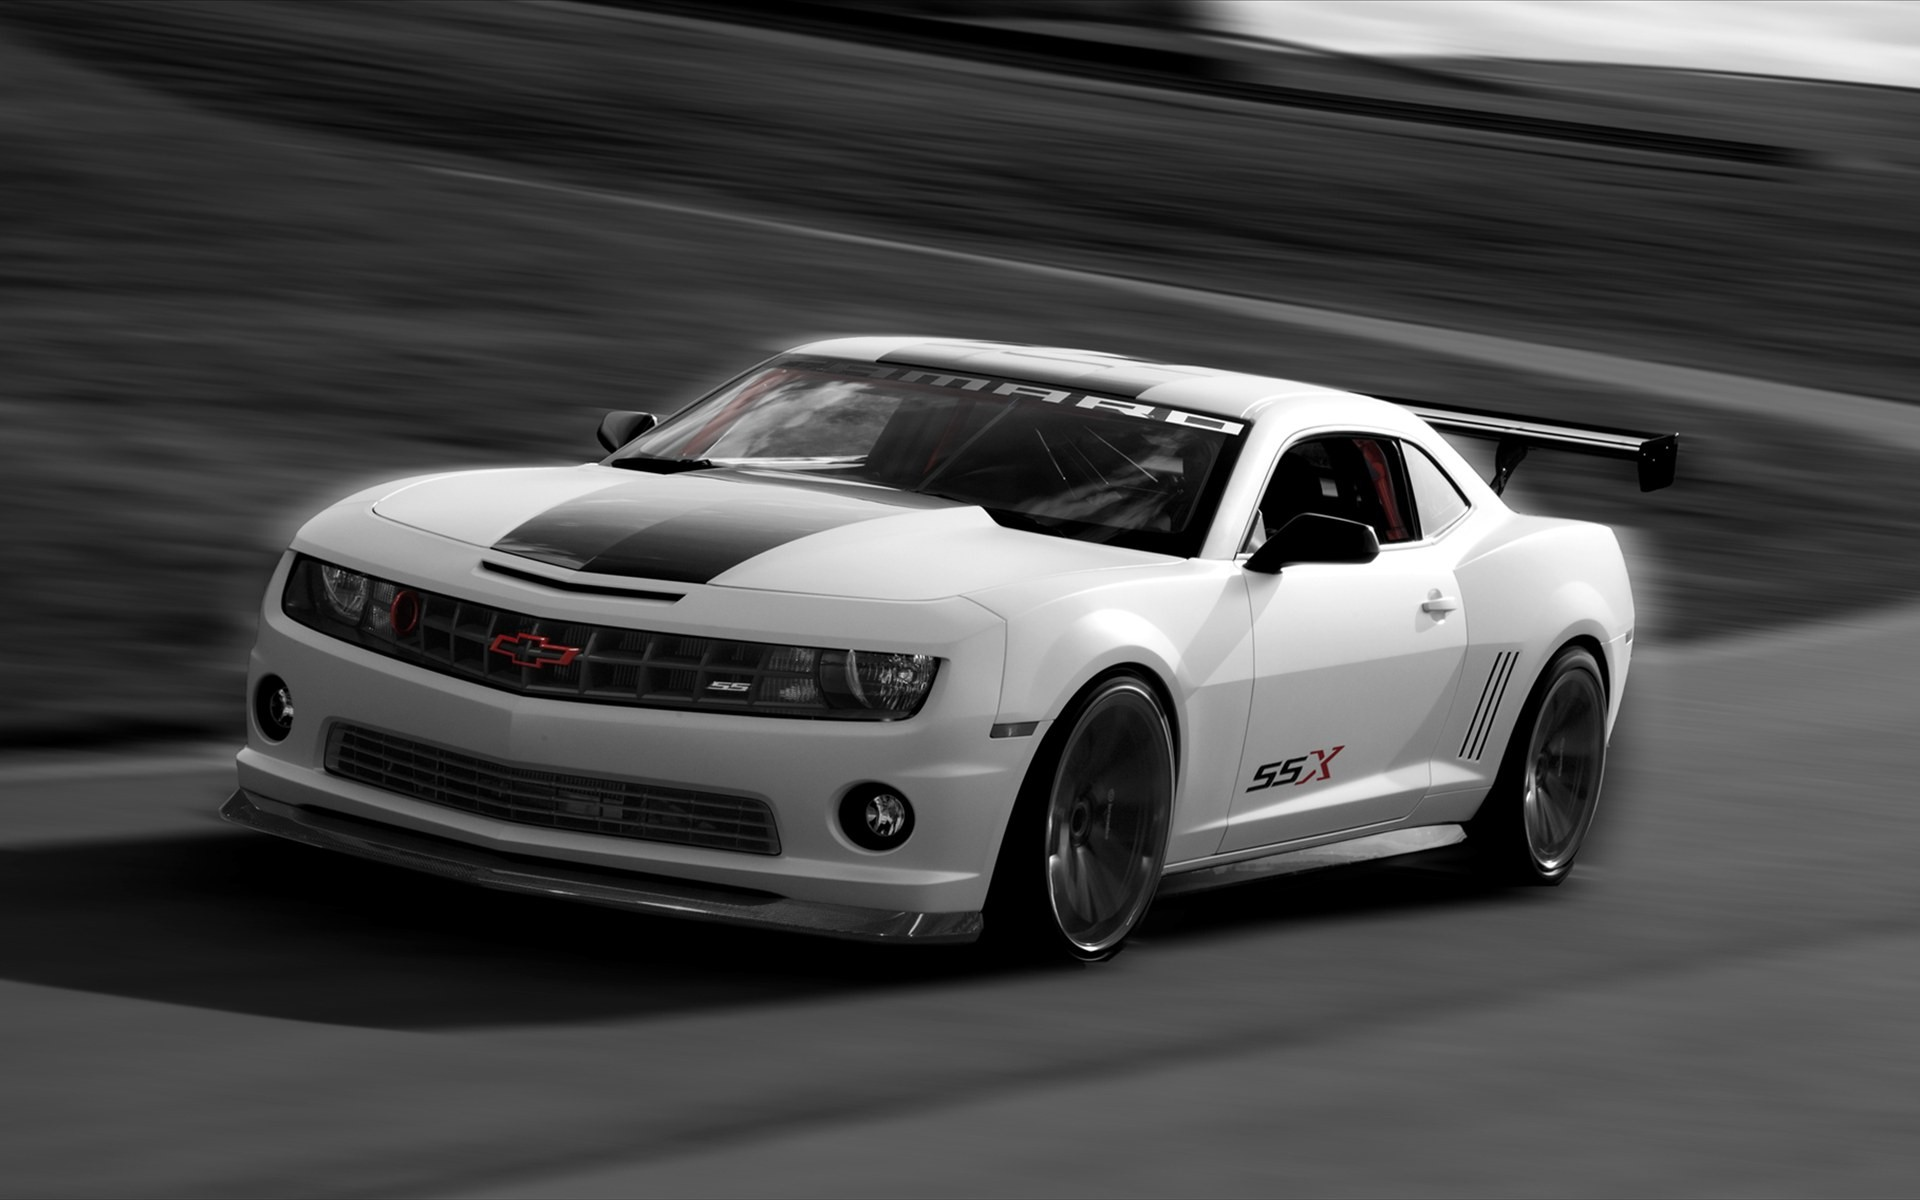 2010 Chevrolet Camaro Ssx Concept Wallpaper Hd Car